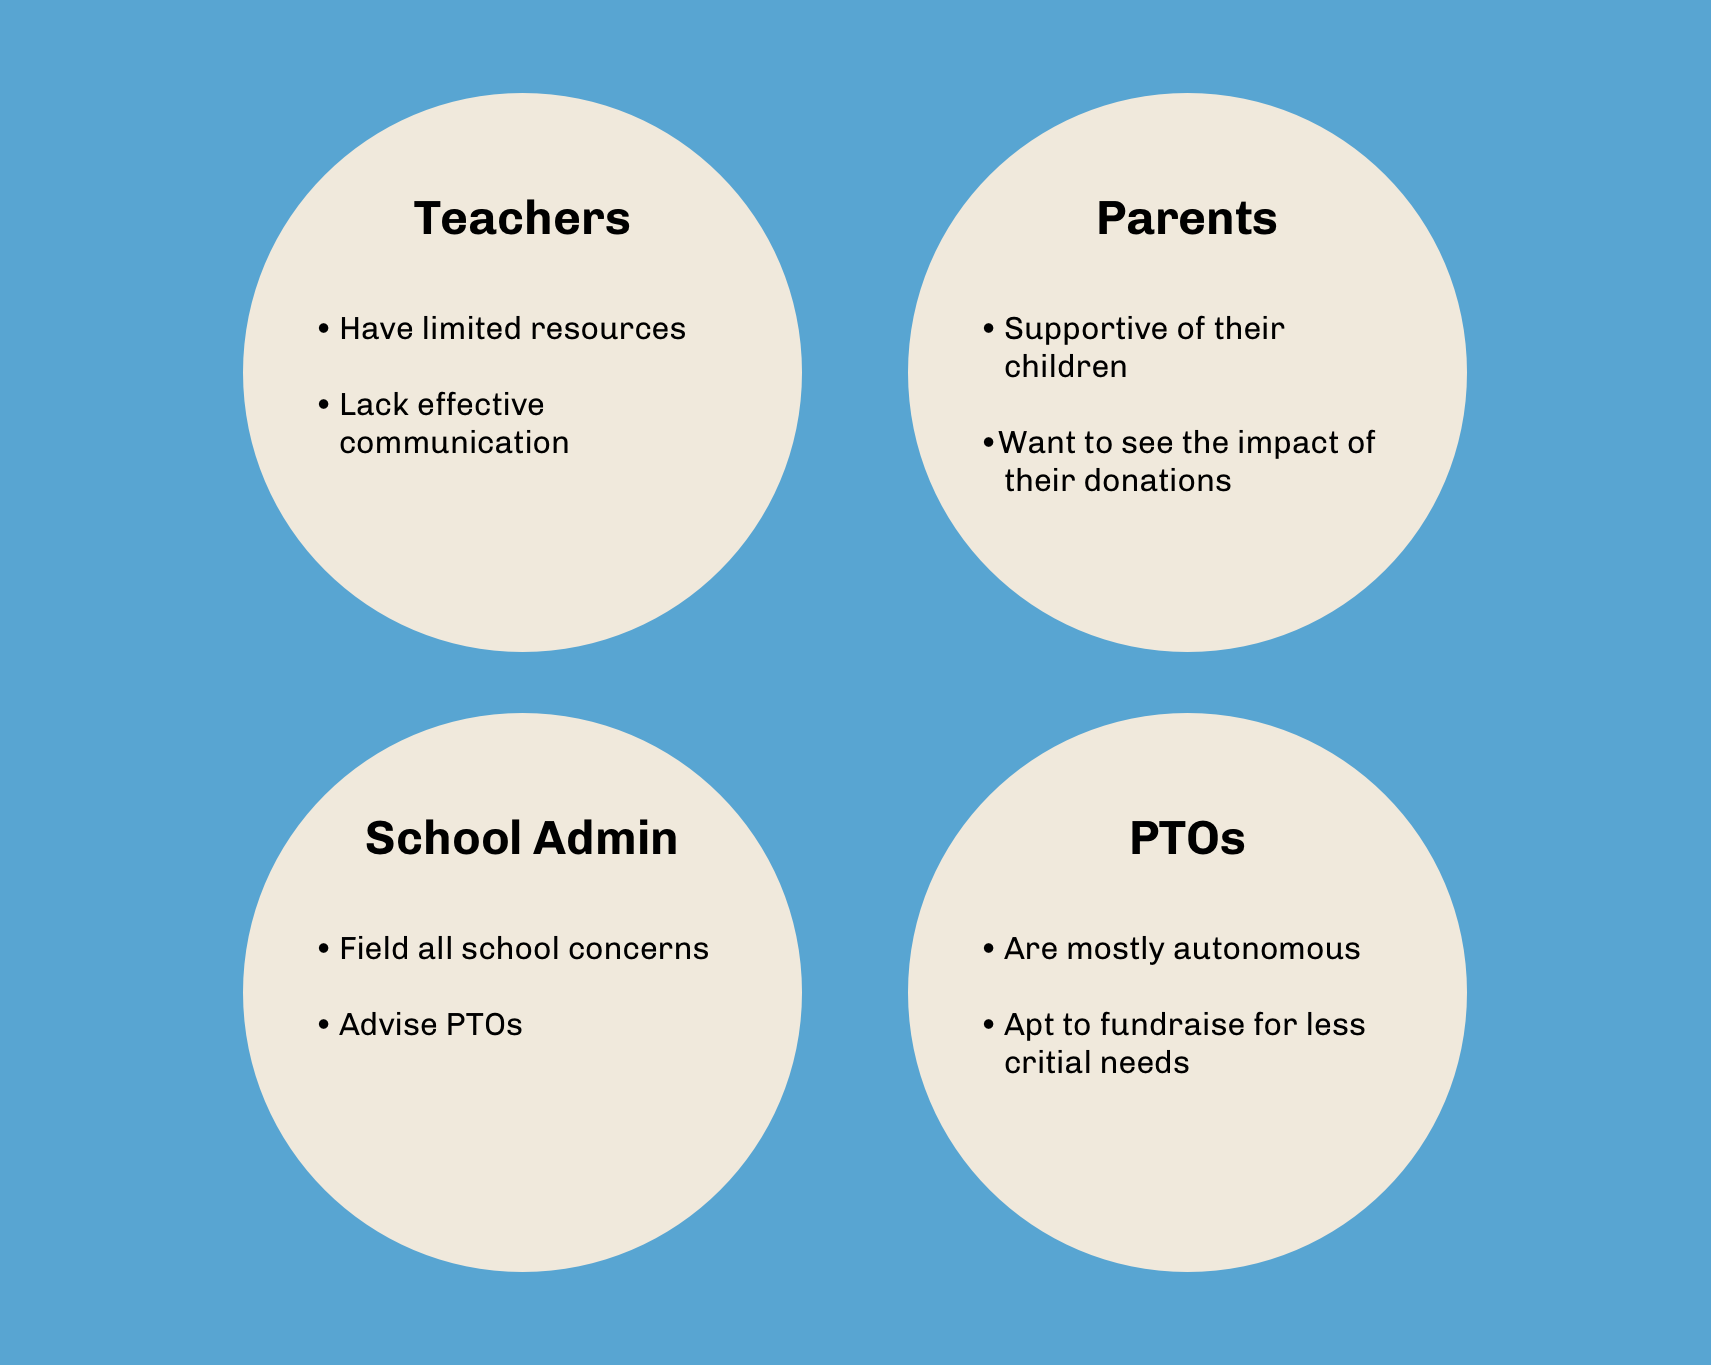 Teachers, parents, school administration, and PTOs are disconnected due to poor communication and differing goals — resulting in less effective fundraising outcomes.